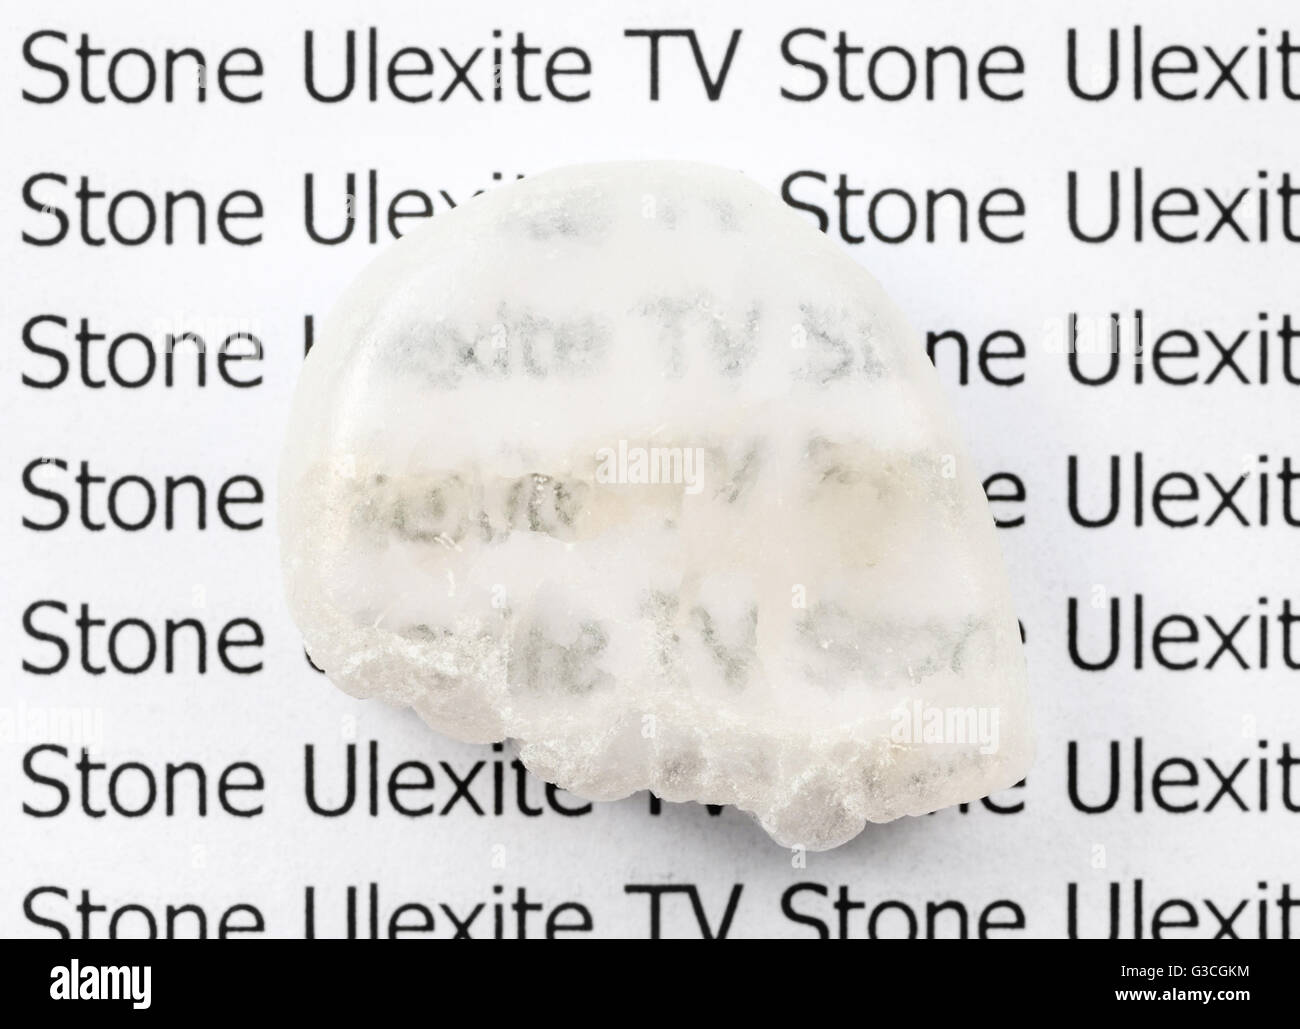 polished Ulexite (TV stone) natural mineral gemstone on sheet of paper with letter. Ulexite is known as TV rock - Stock Image